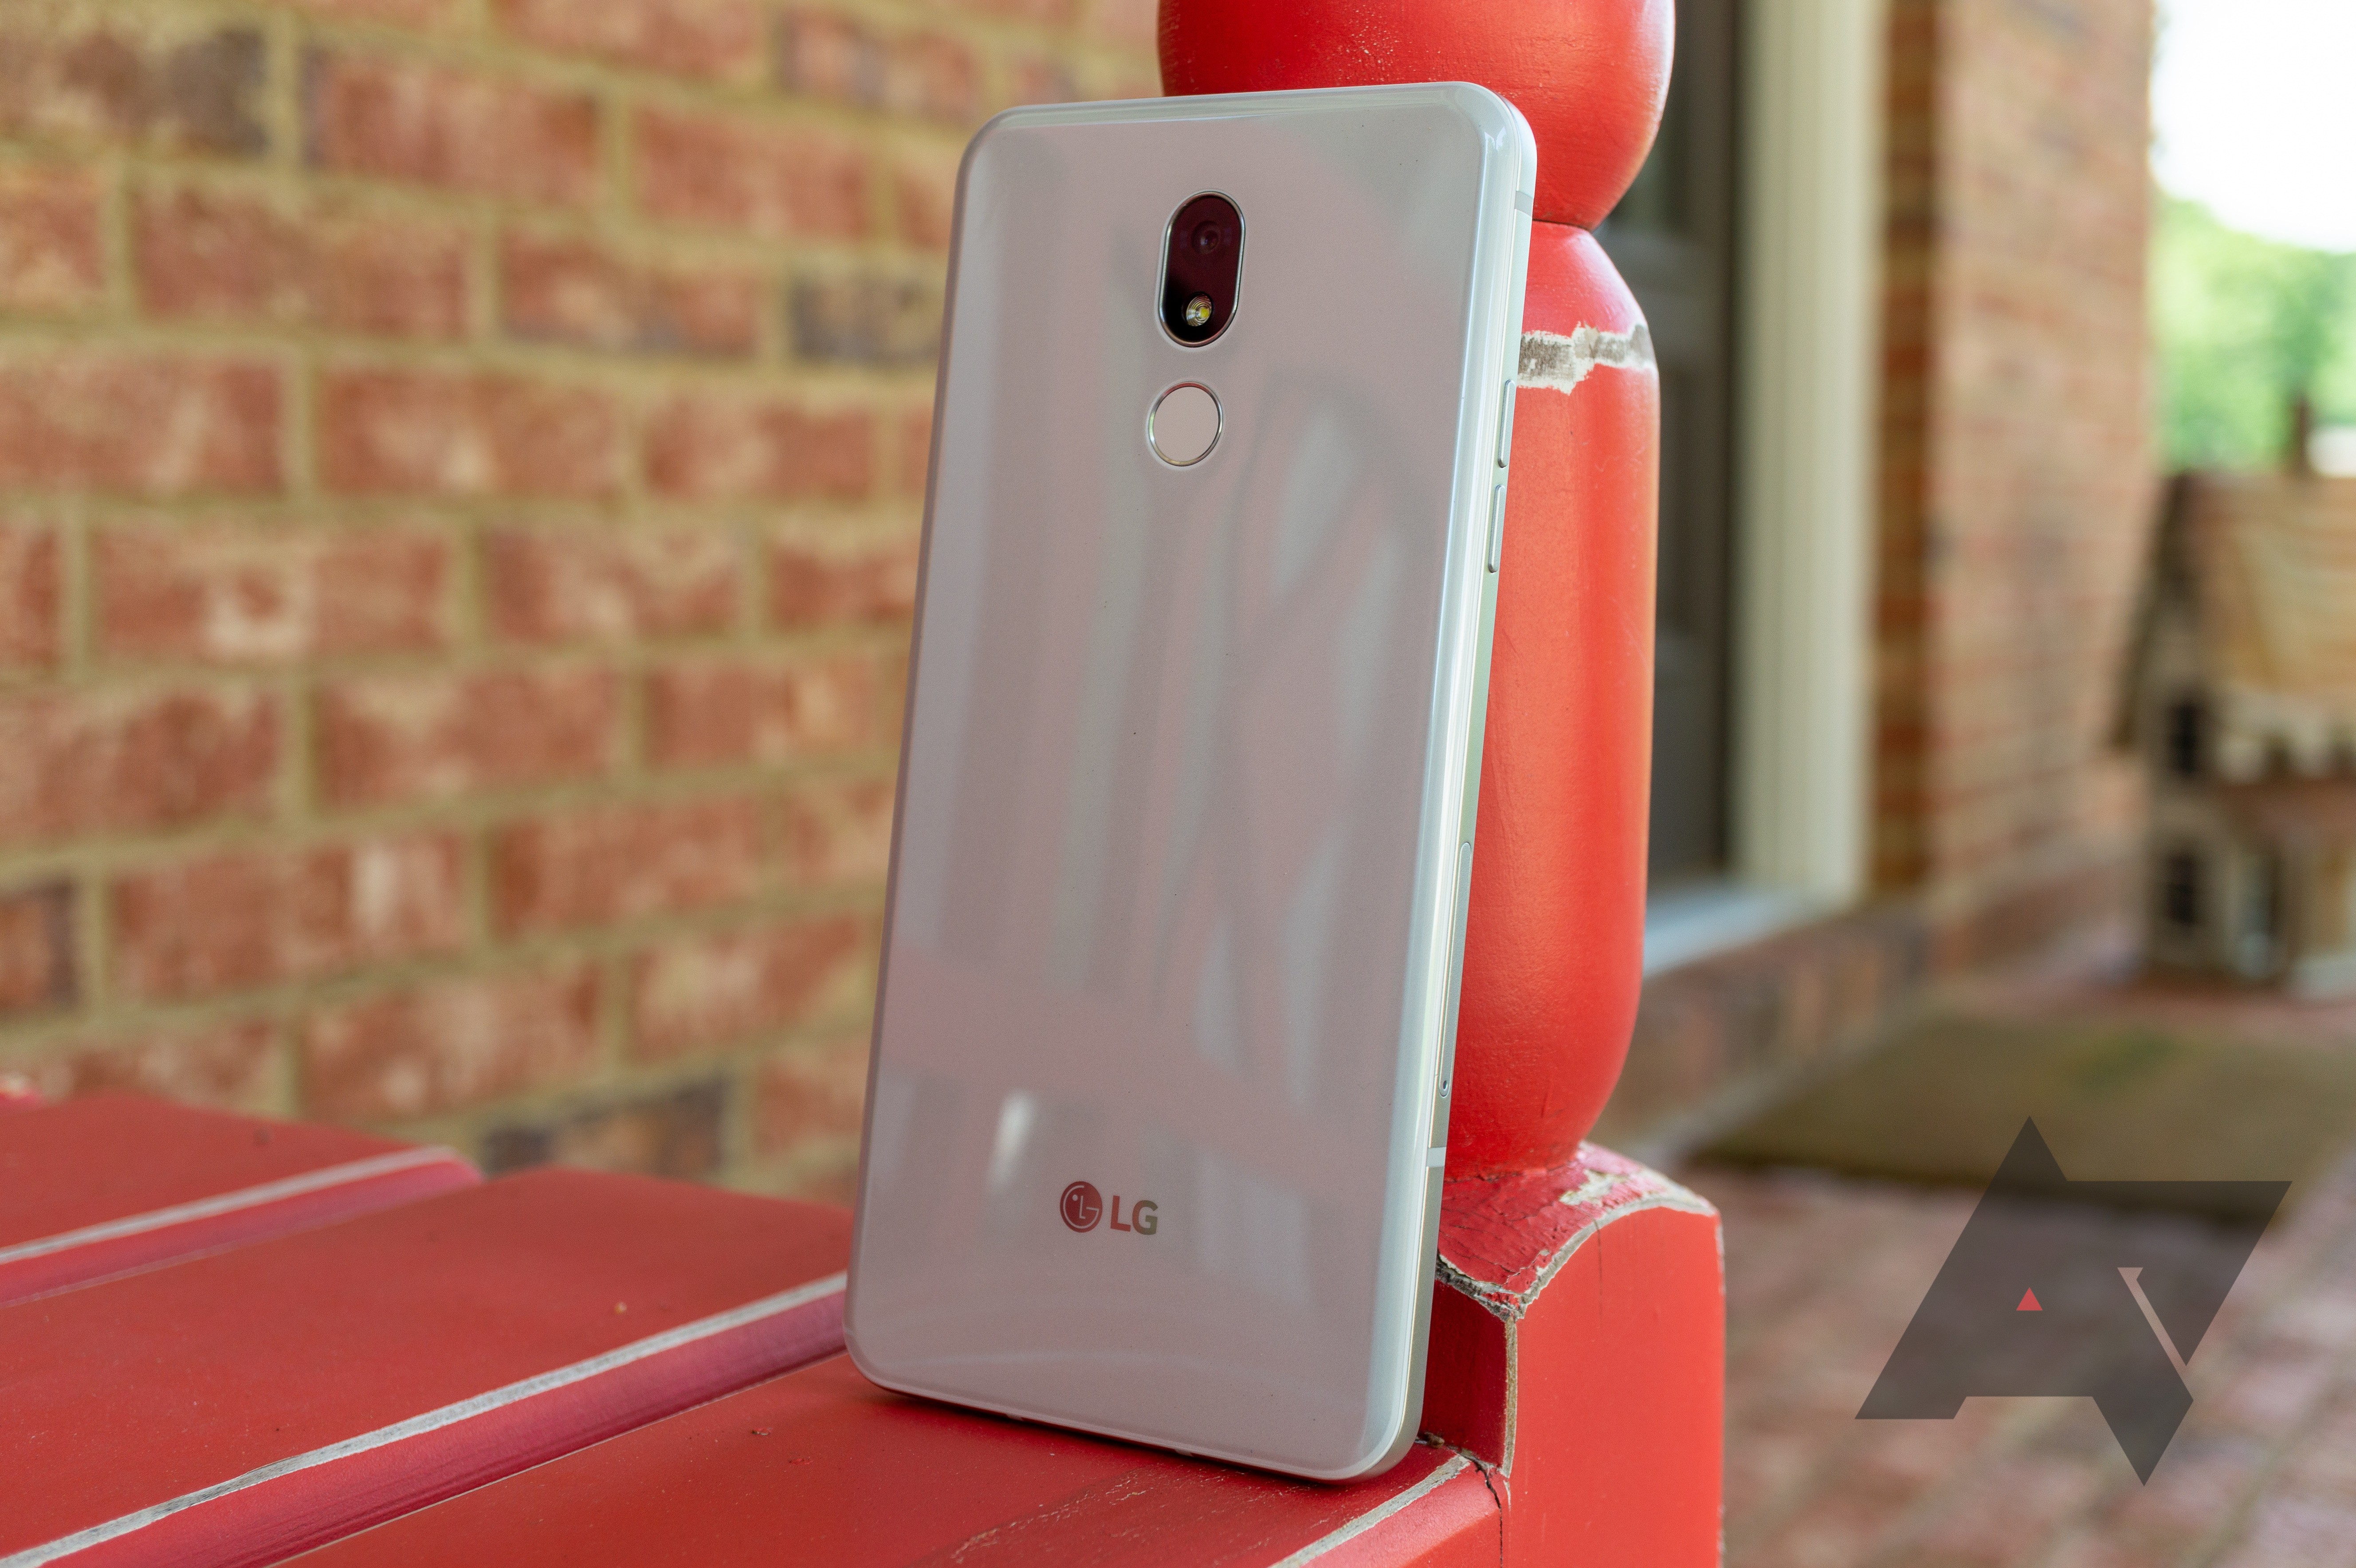 LG Stylo 5 review: A passable Galaxy Note alternative if you